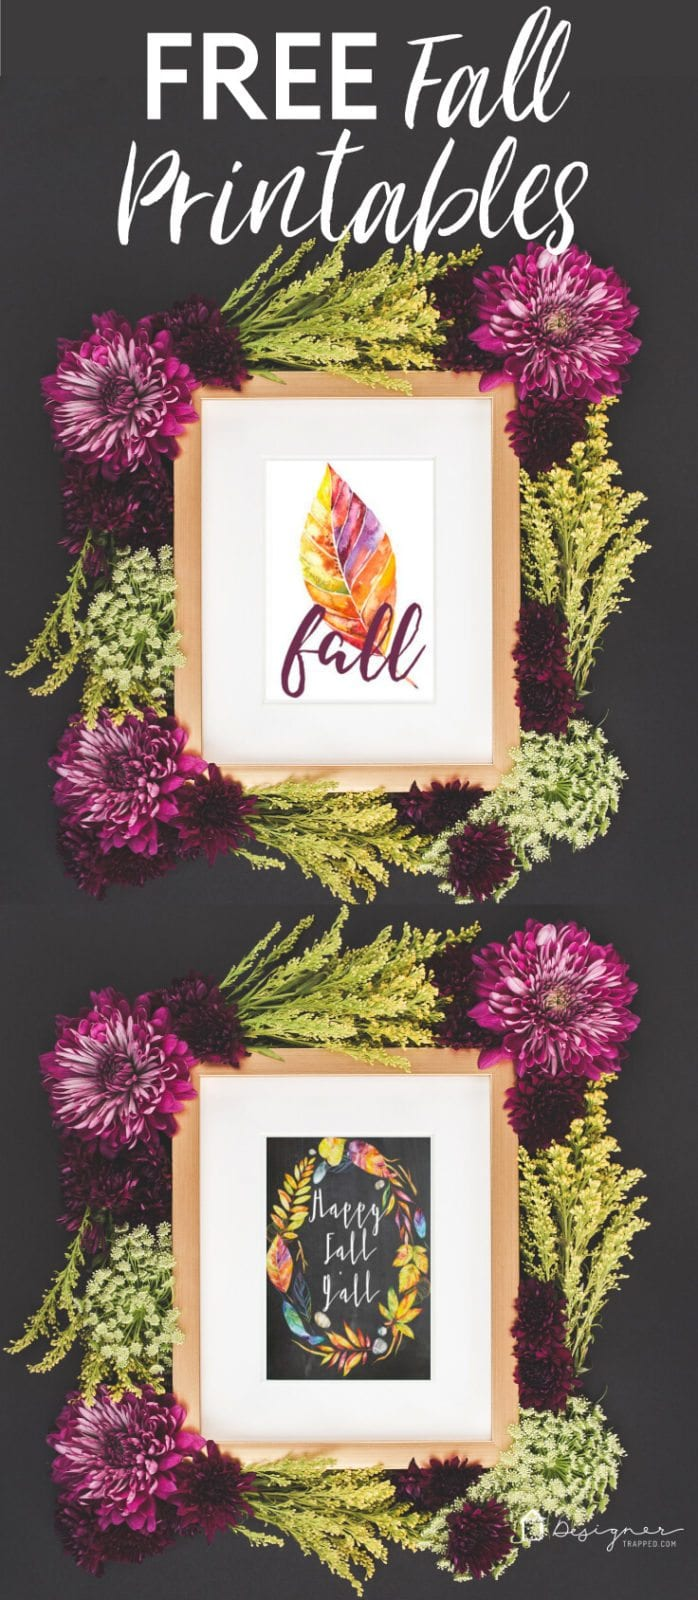 Update your home for fall with these fabulous and FREE fall printables!